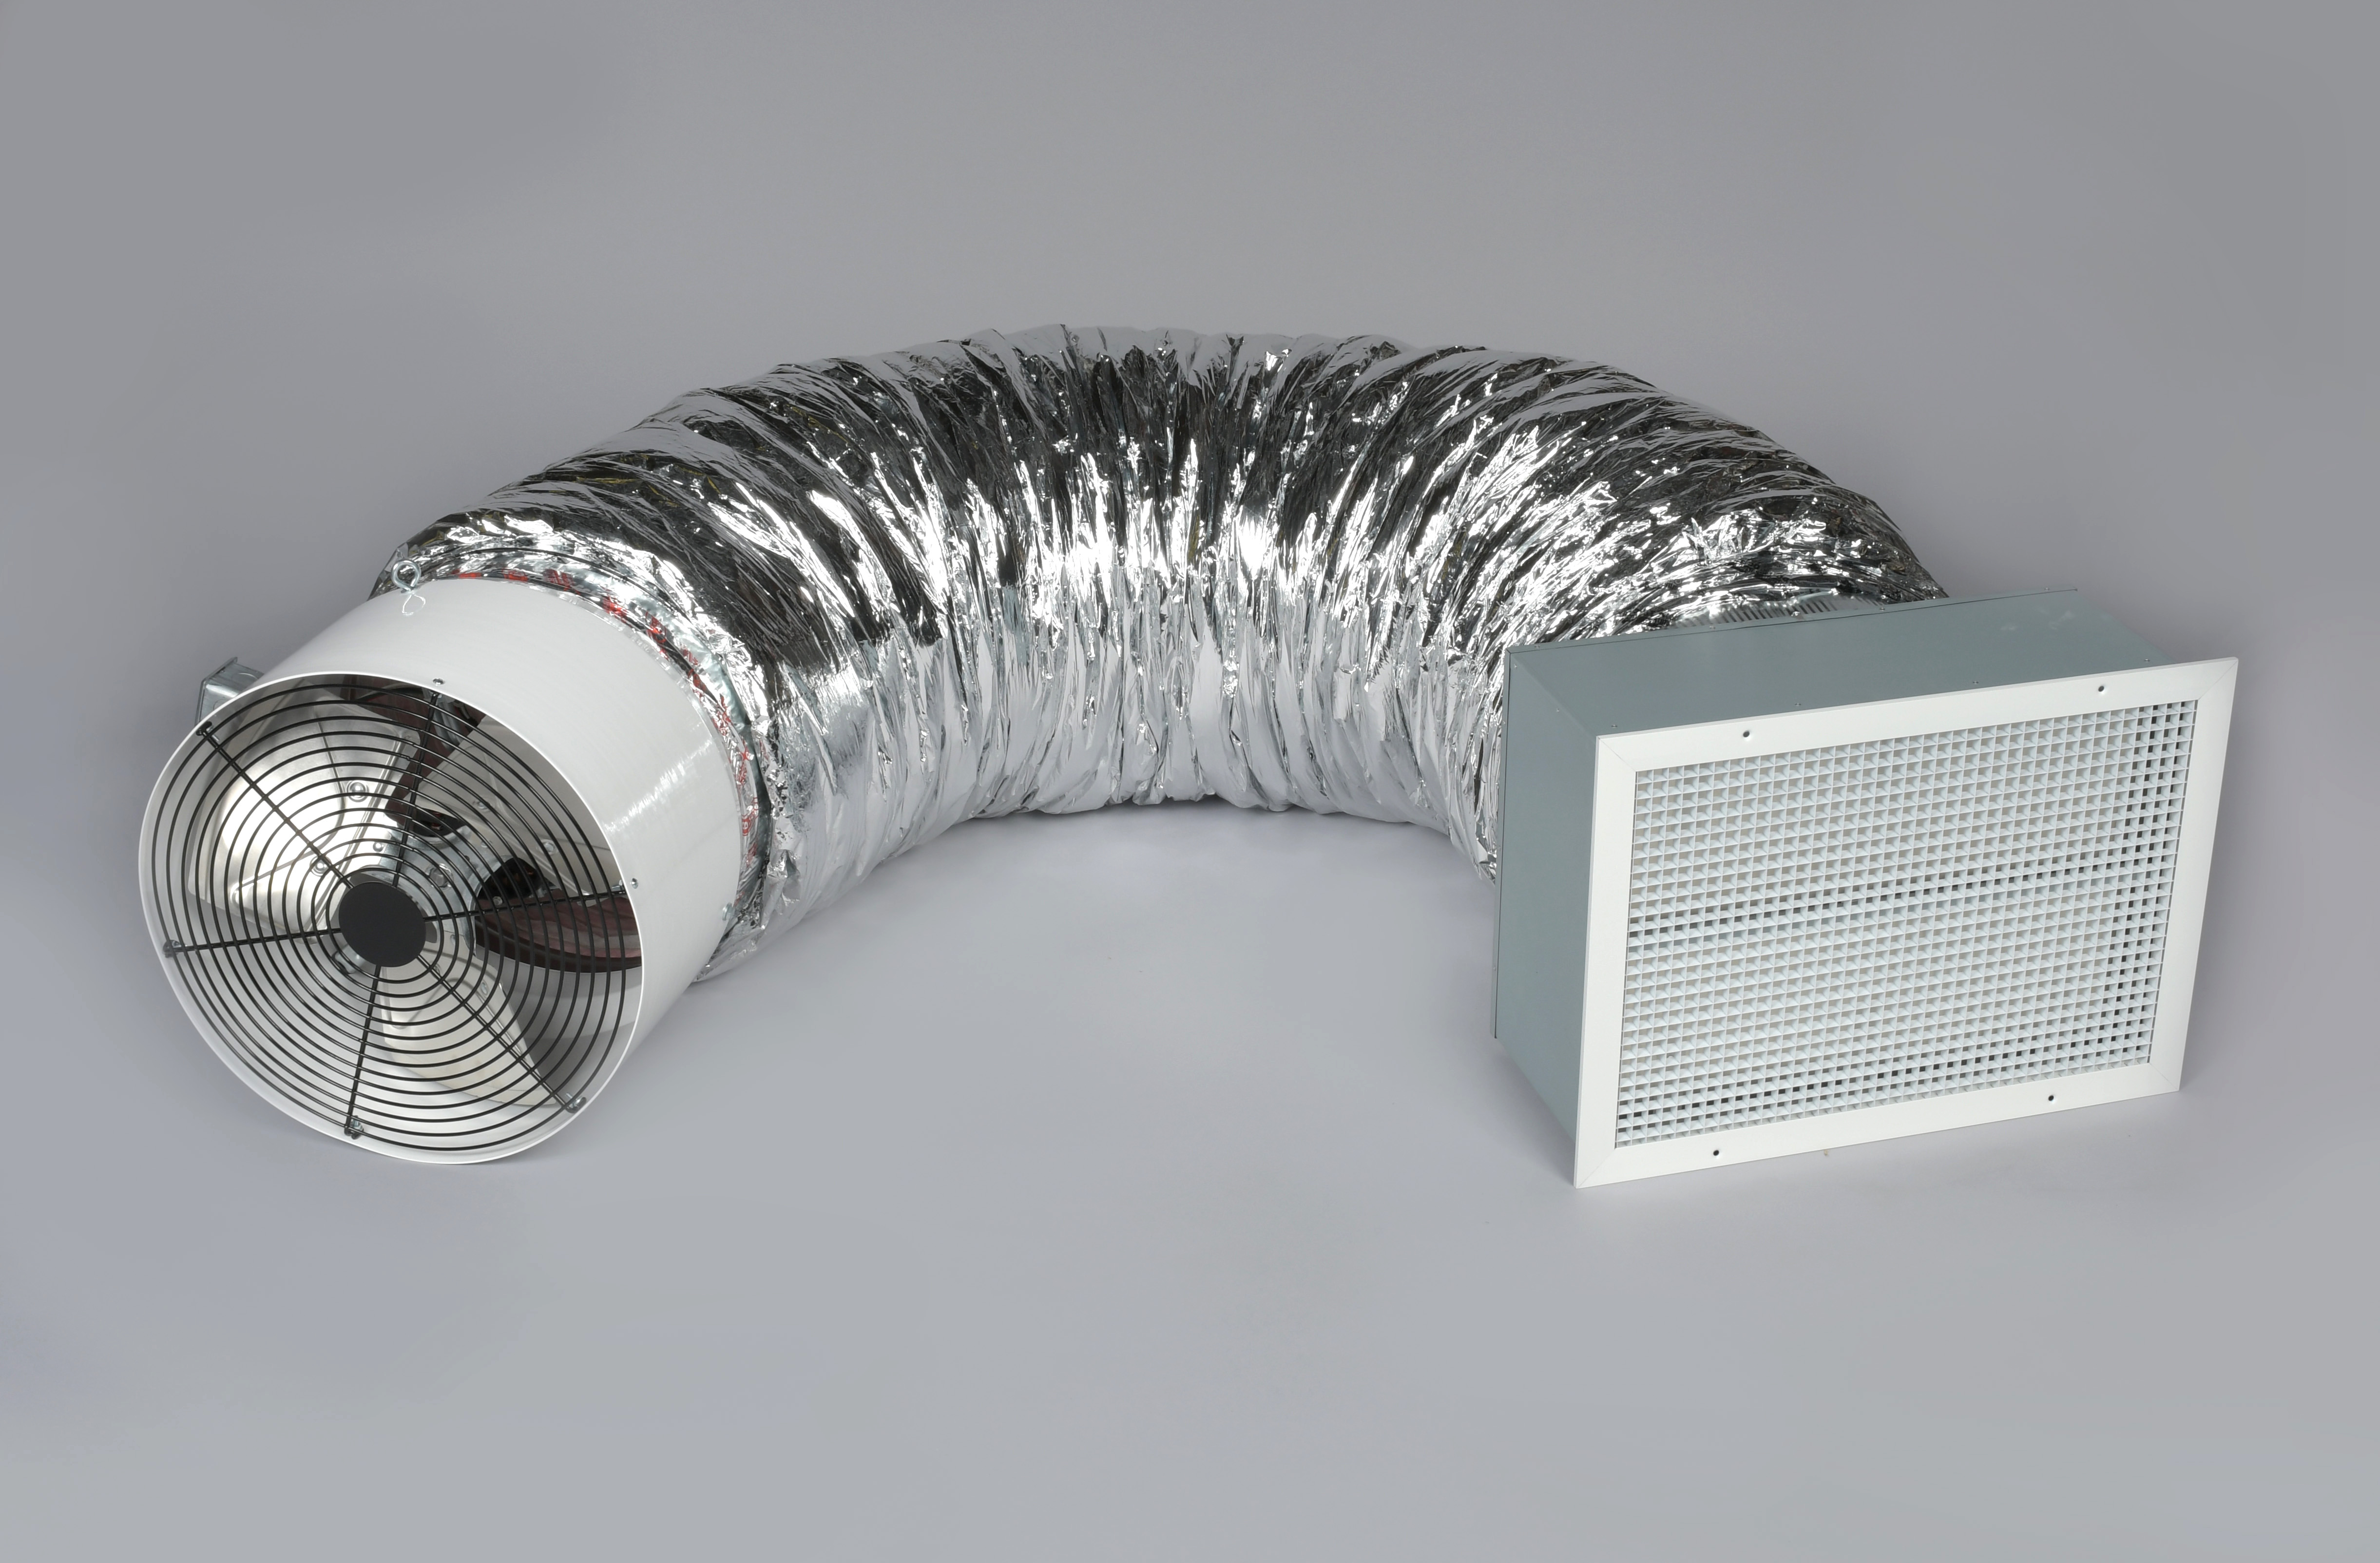 Quiet Air Fan Deluxe Qa 3300 R Whole House Fan With On